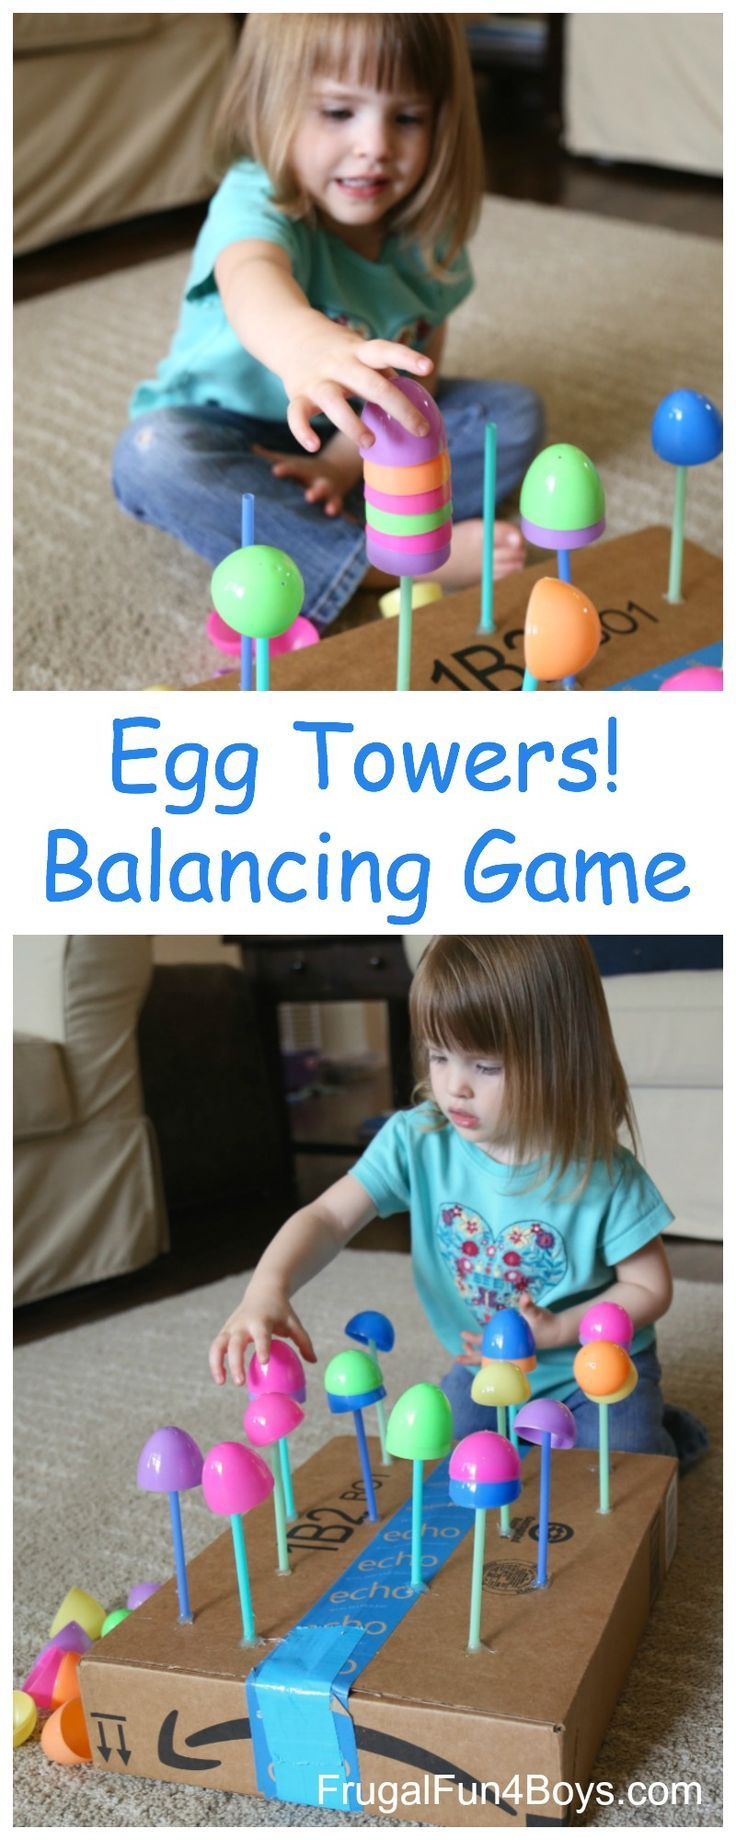 My preschoolers have always loved playing with plastic Easter eggs! It's fun to put little things inside them, and then open and close the eggs. We've also used them to make play dough dinosaur eggs and minions. Here's a simple egg stacking game that provides a way to work on fine motor skills through play!...Read More »